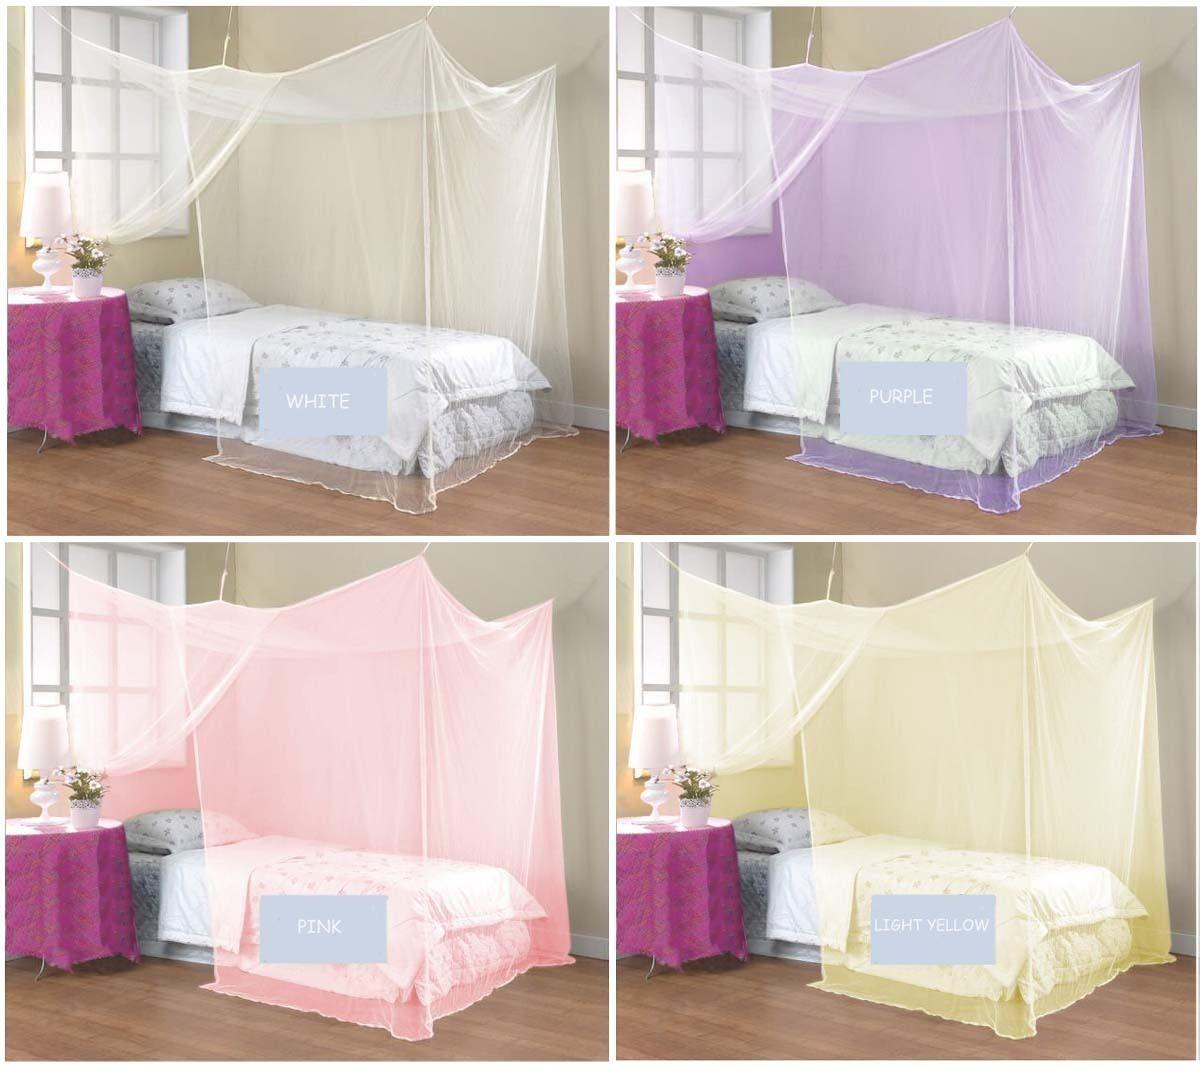 4 Corner Poster Student Family Use Canopy Bed Mosquito Net Twin Full Queen King No See Um Netting Mosquito Net For Cot From Haorizi123 $16.08| Dhgate.Com  sc 1 st  DHgate.com : canopies for twin beds - memphite.com